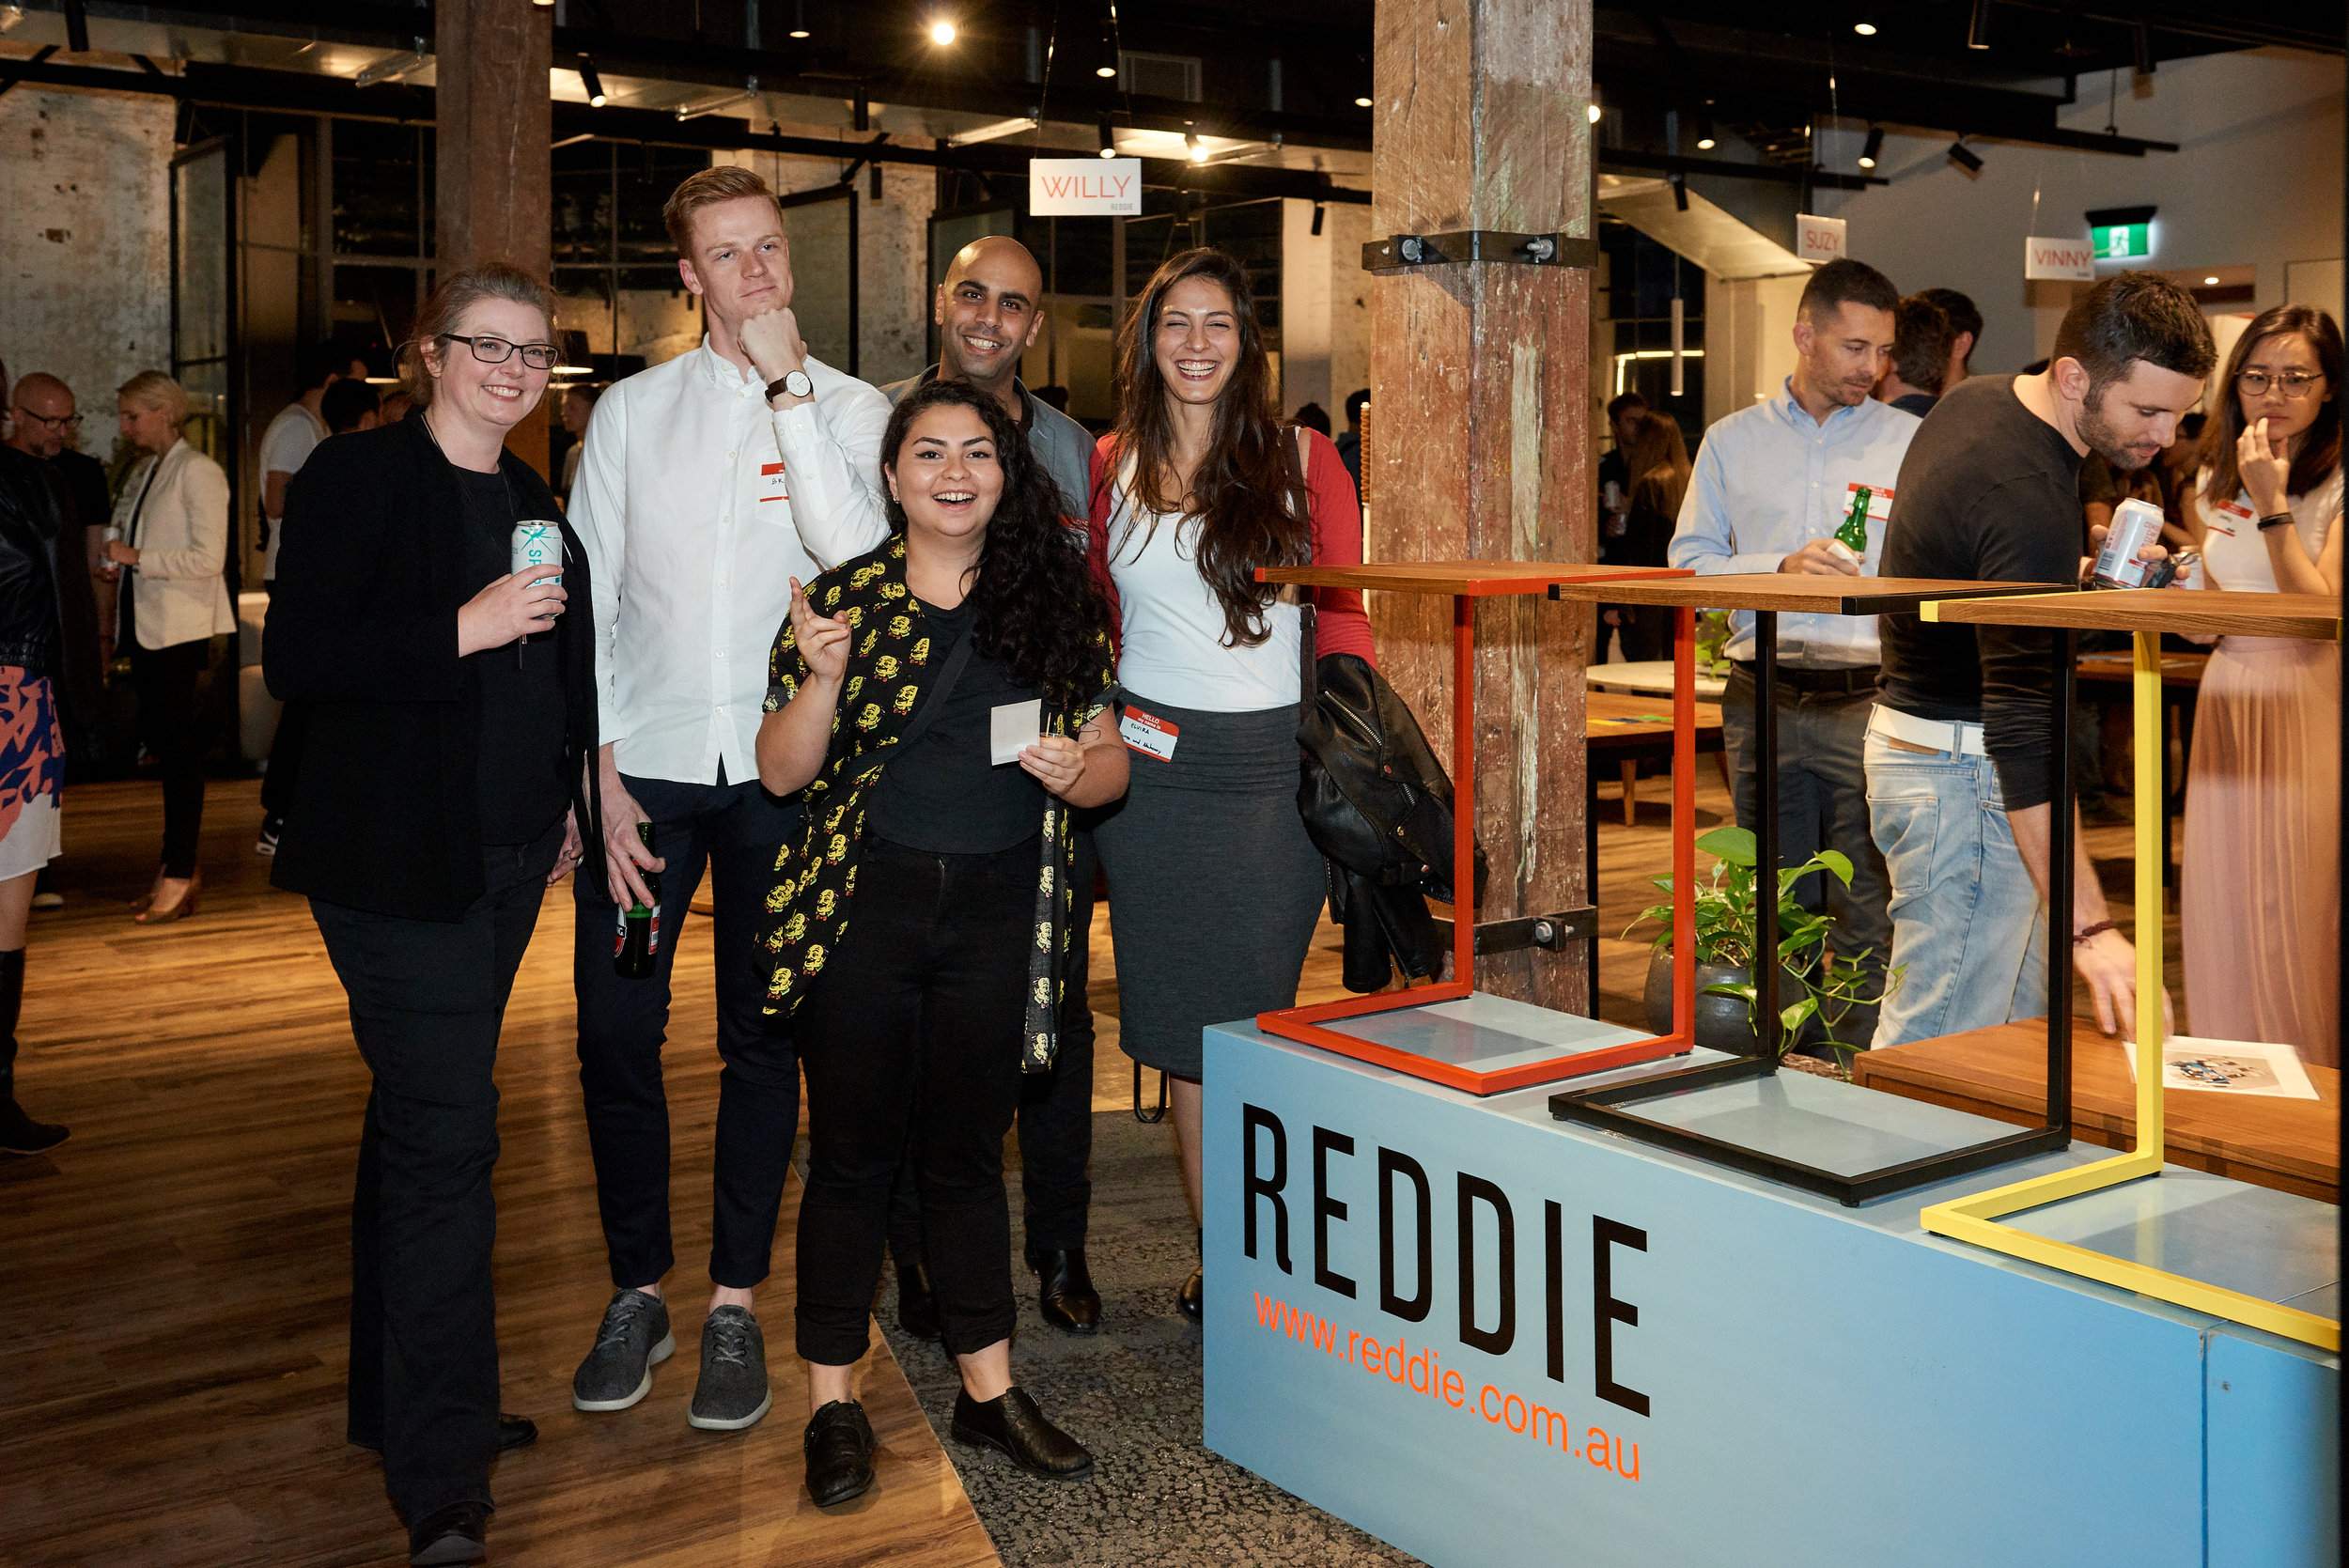 Happy guests gathering at the REDDIE sign amid the fun and celebration